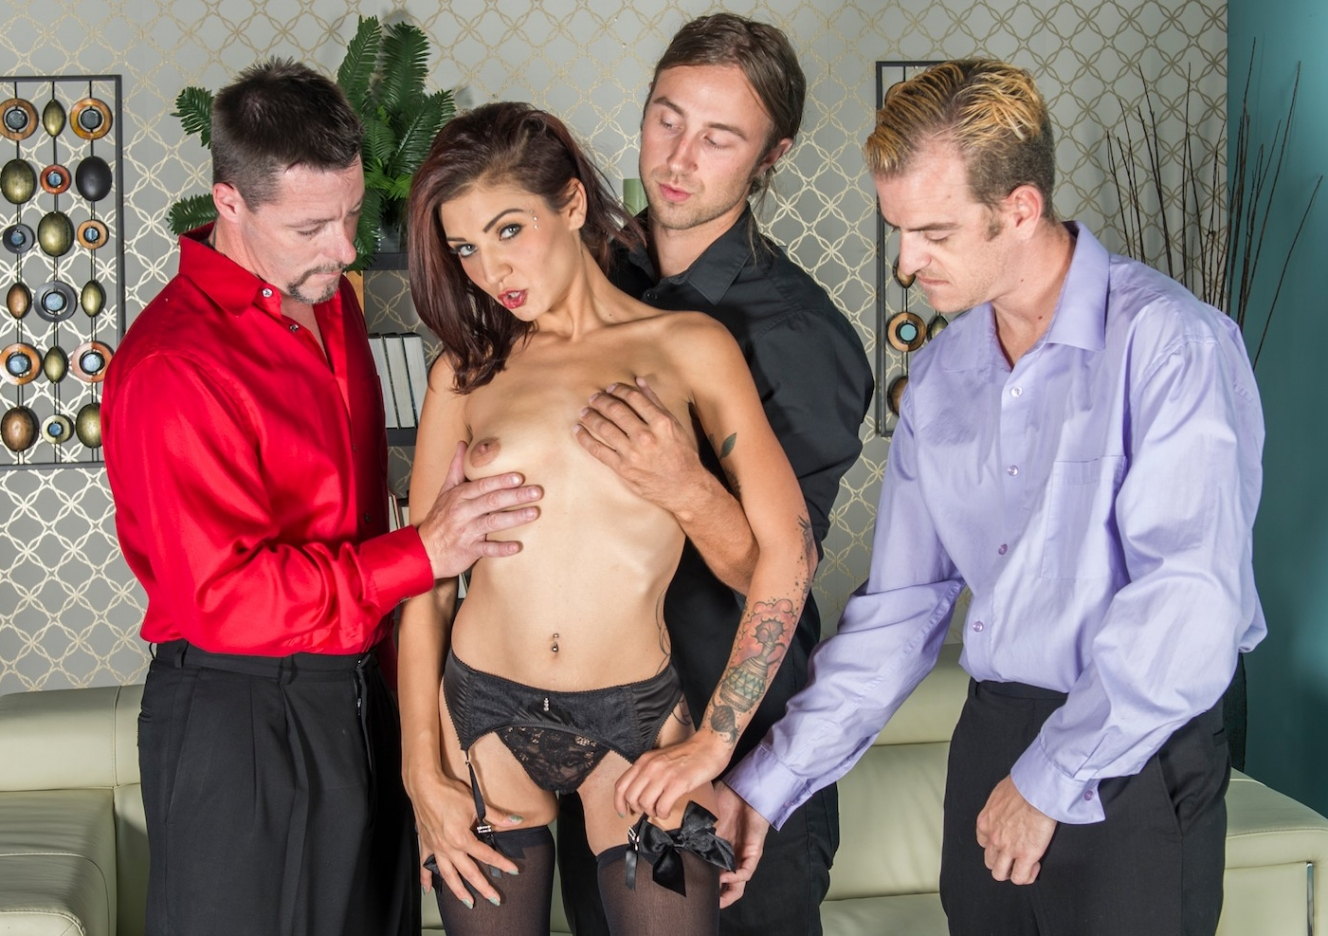 The stripper experience vyxen steel gets her ass fucked 9